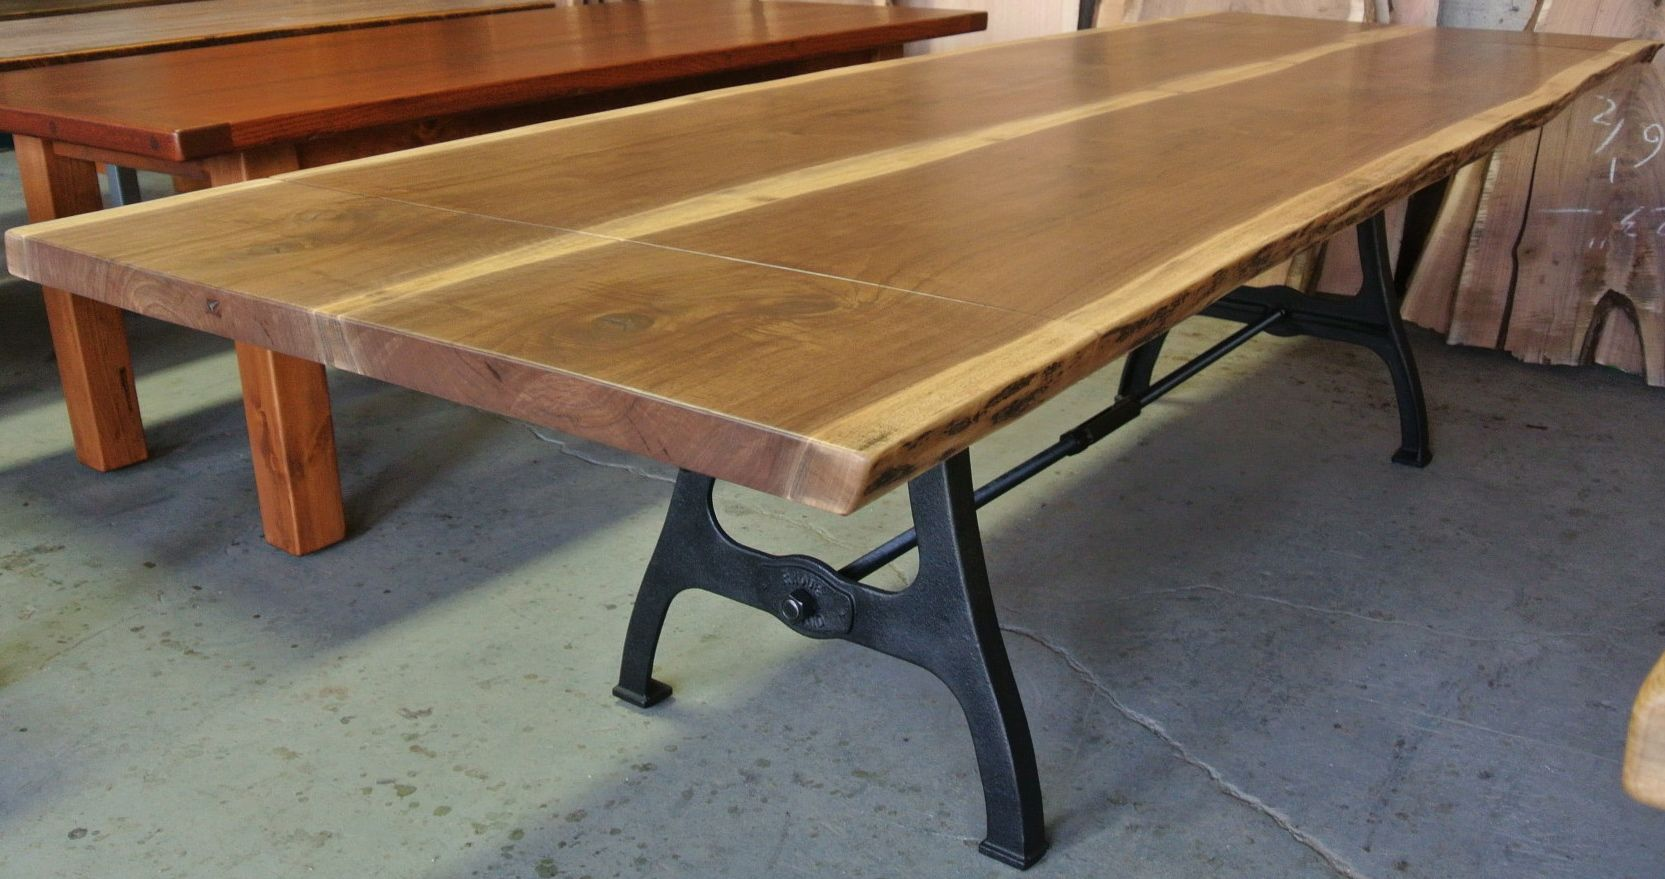 Walnut live edge table on industrial legs This table also